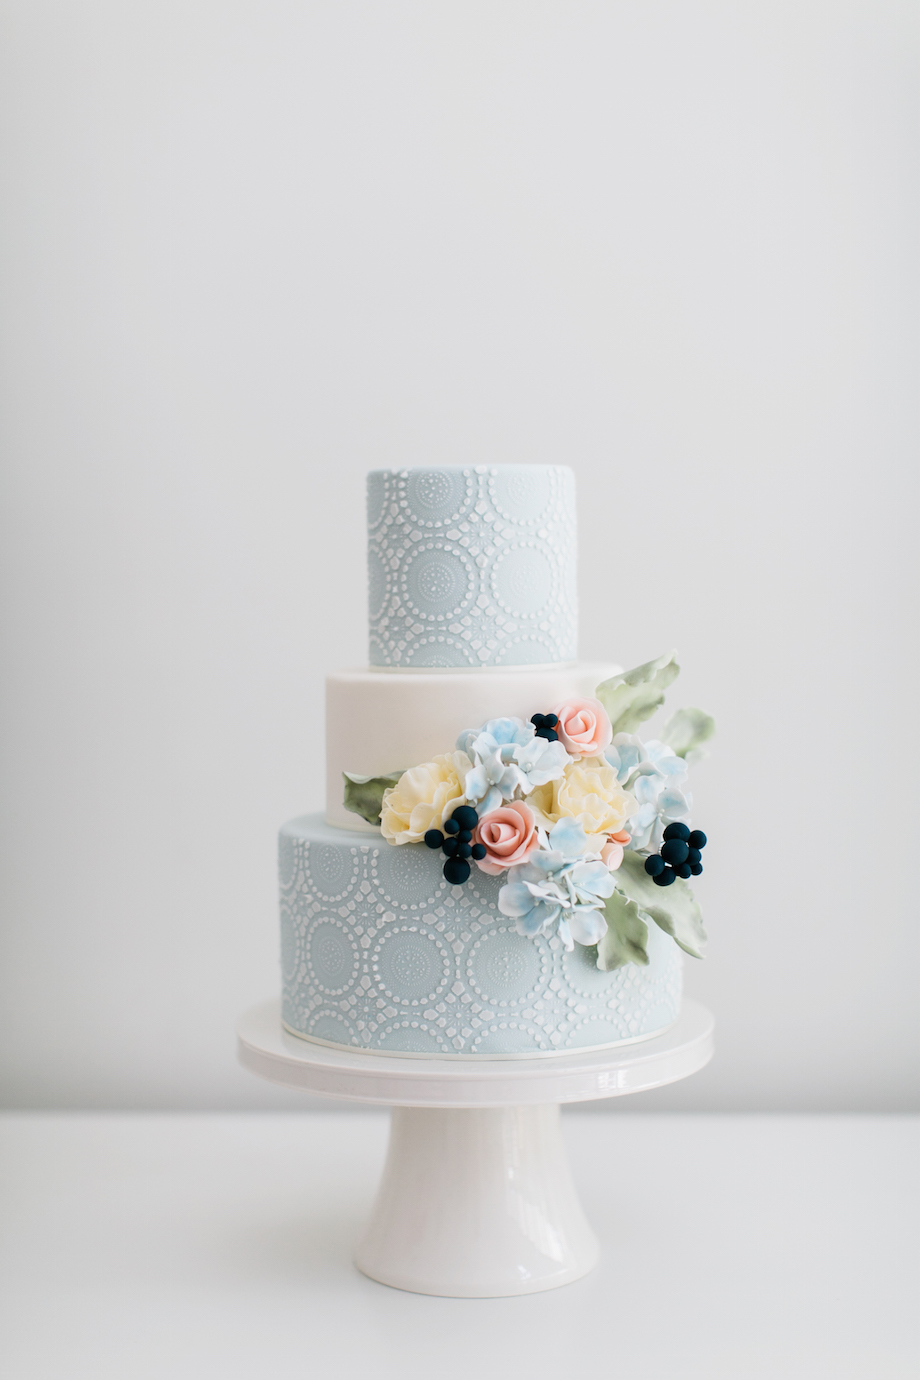 PLANNING YOUR WEDDING CAKE — The Wedding Harvest